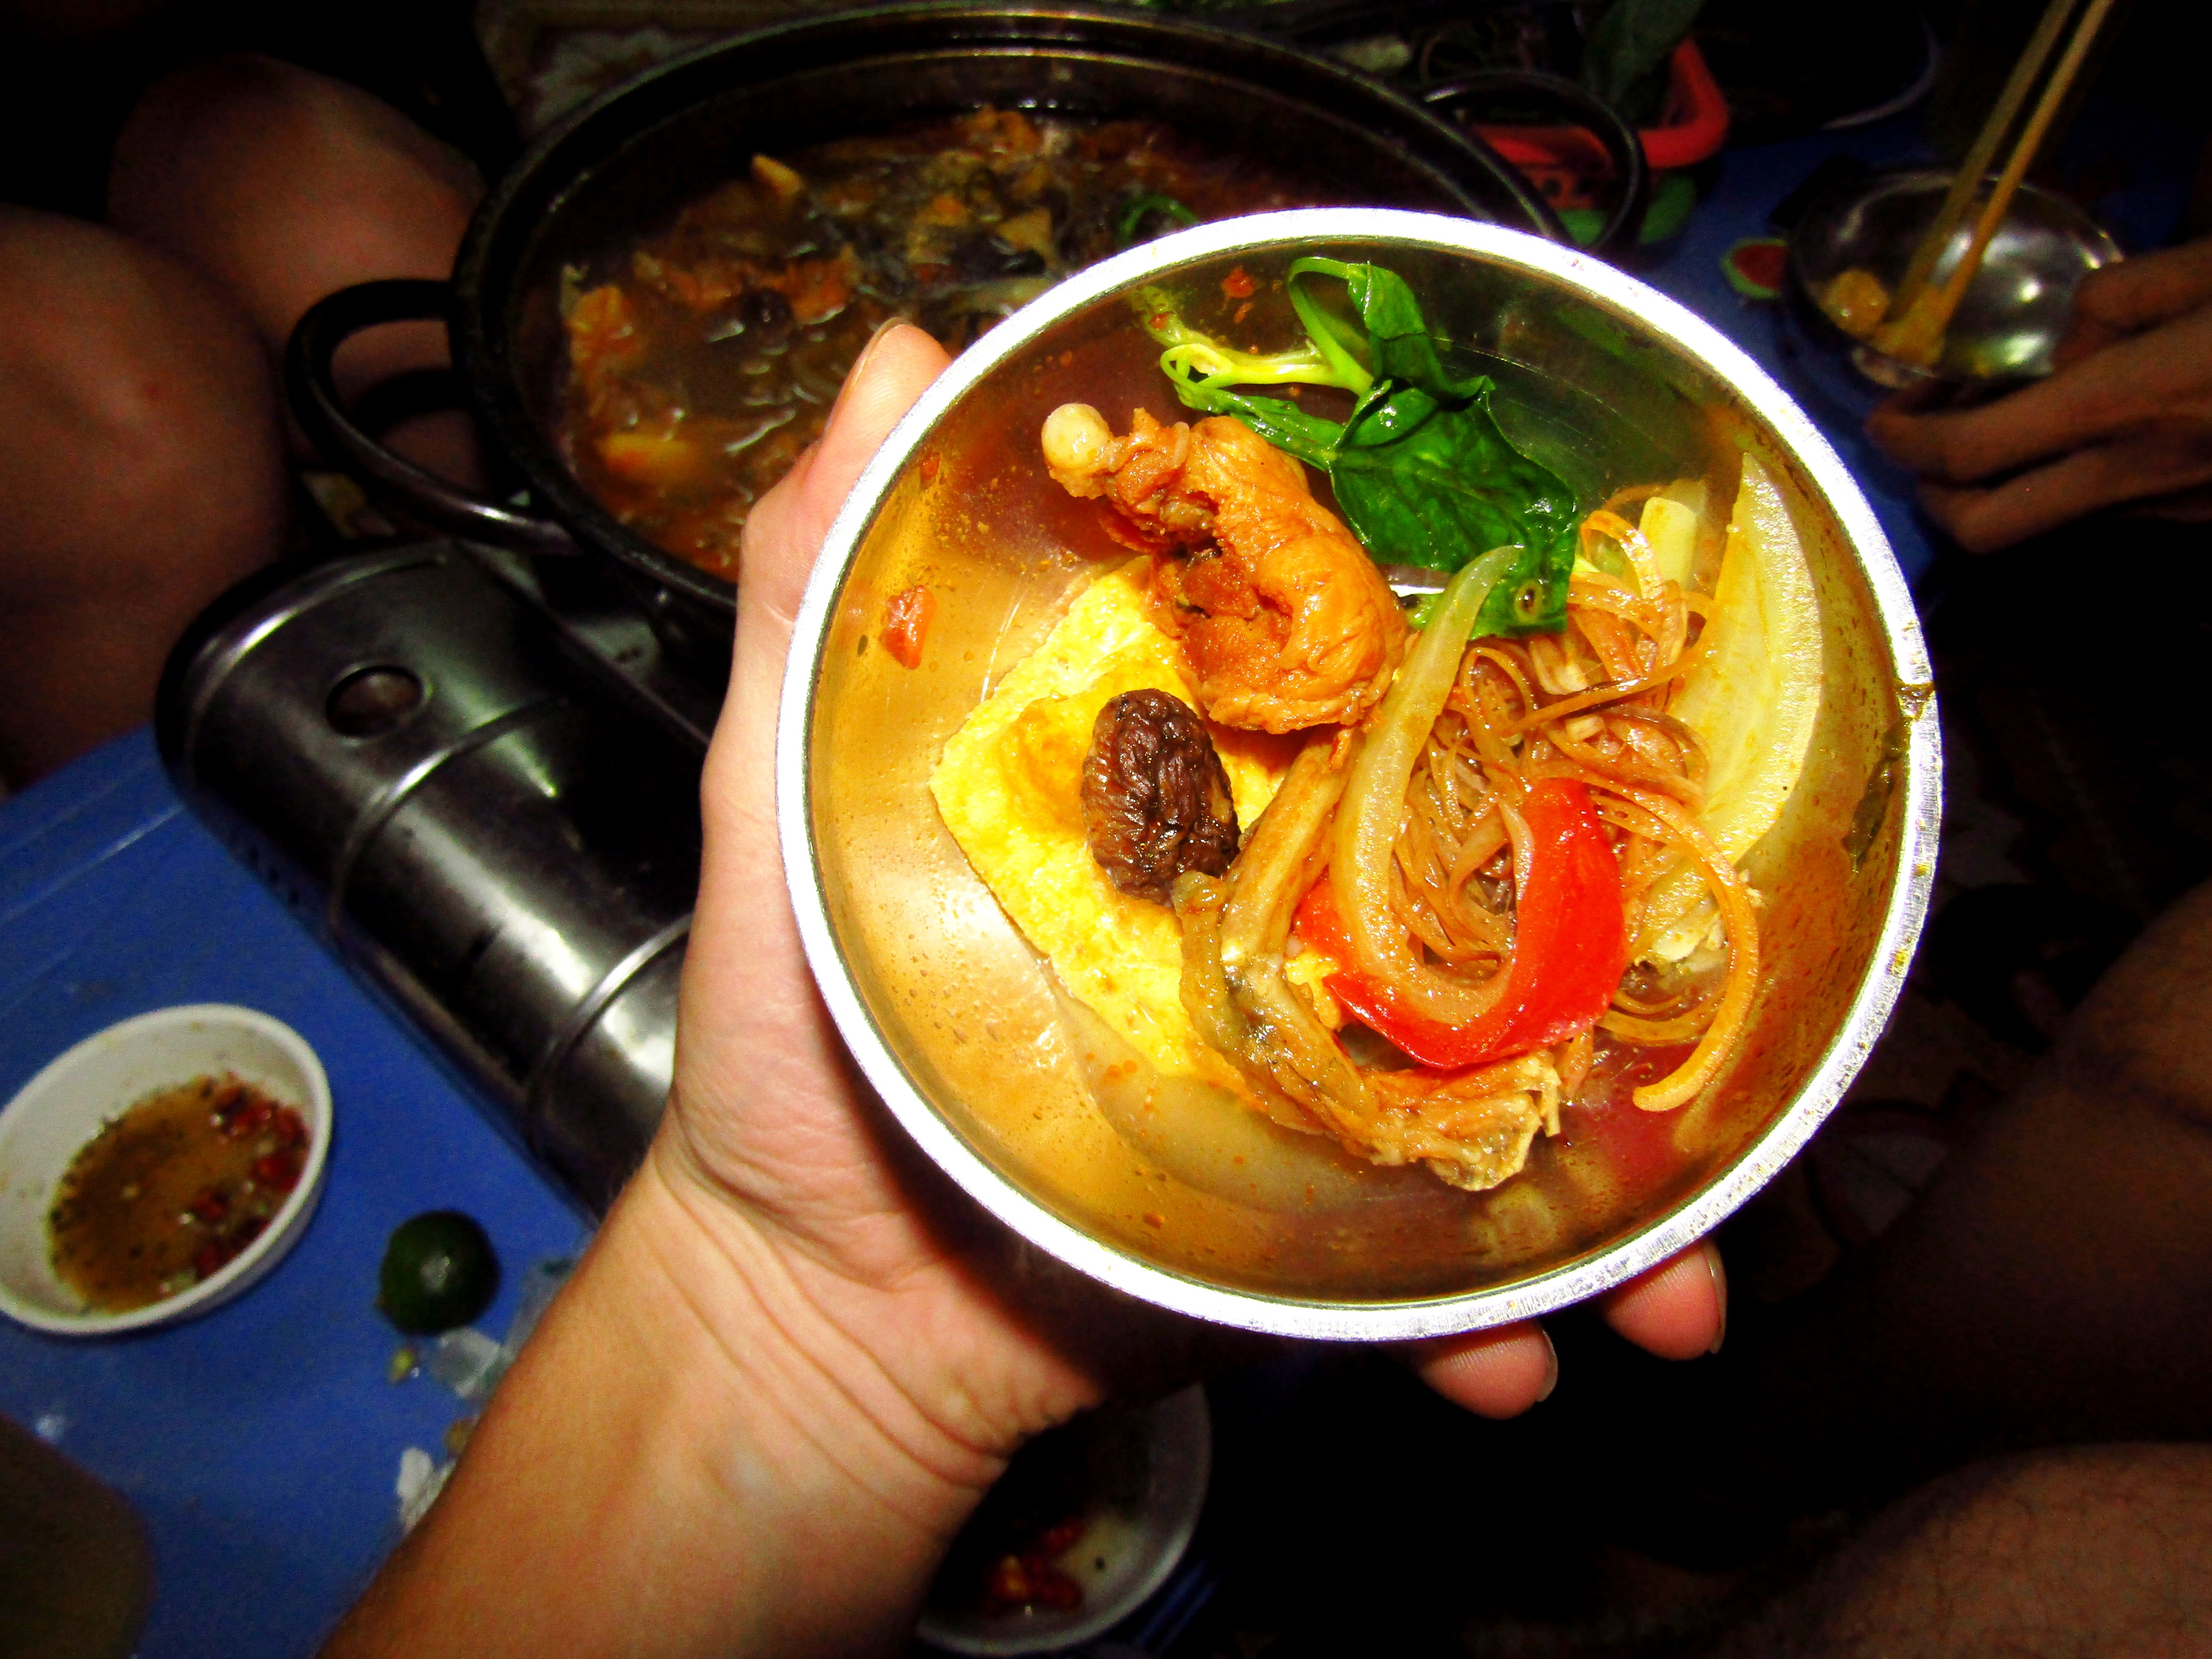 Frog hot pot - can you make out the frog?